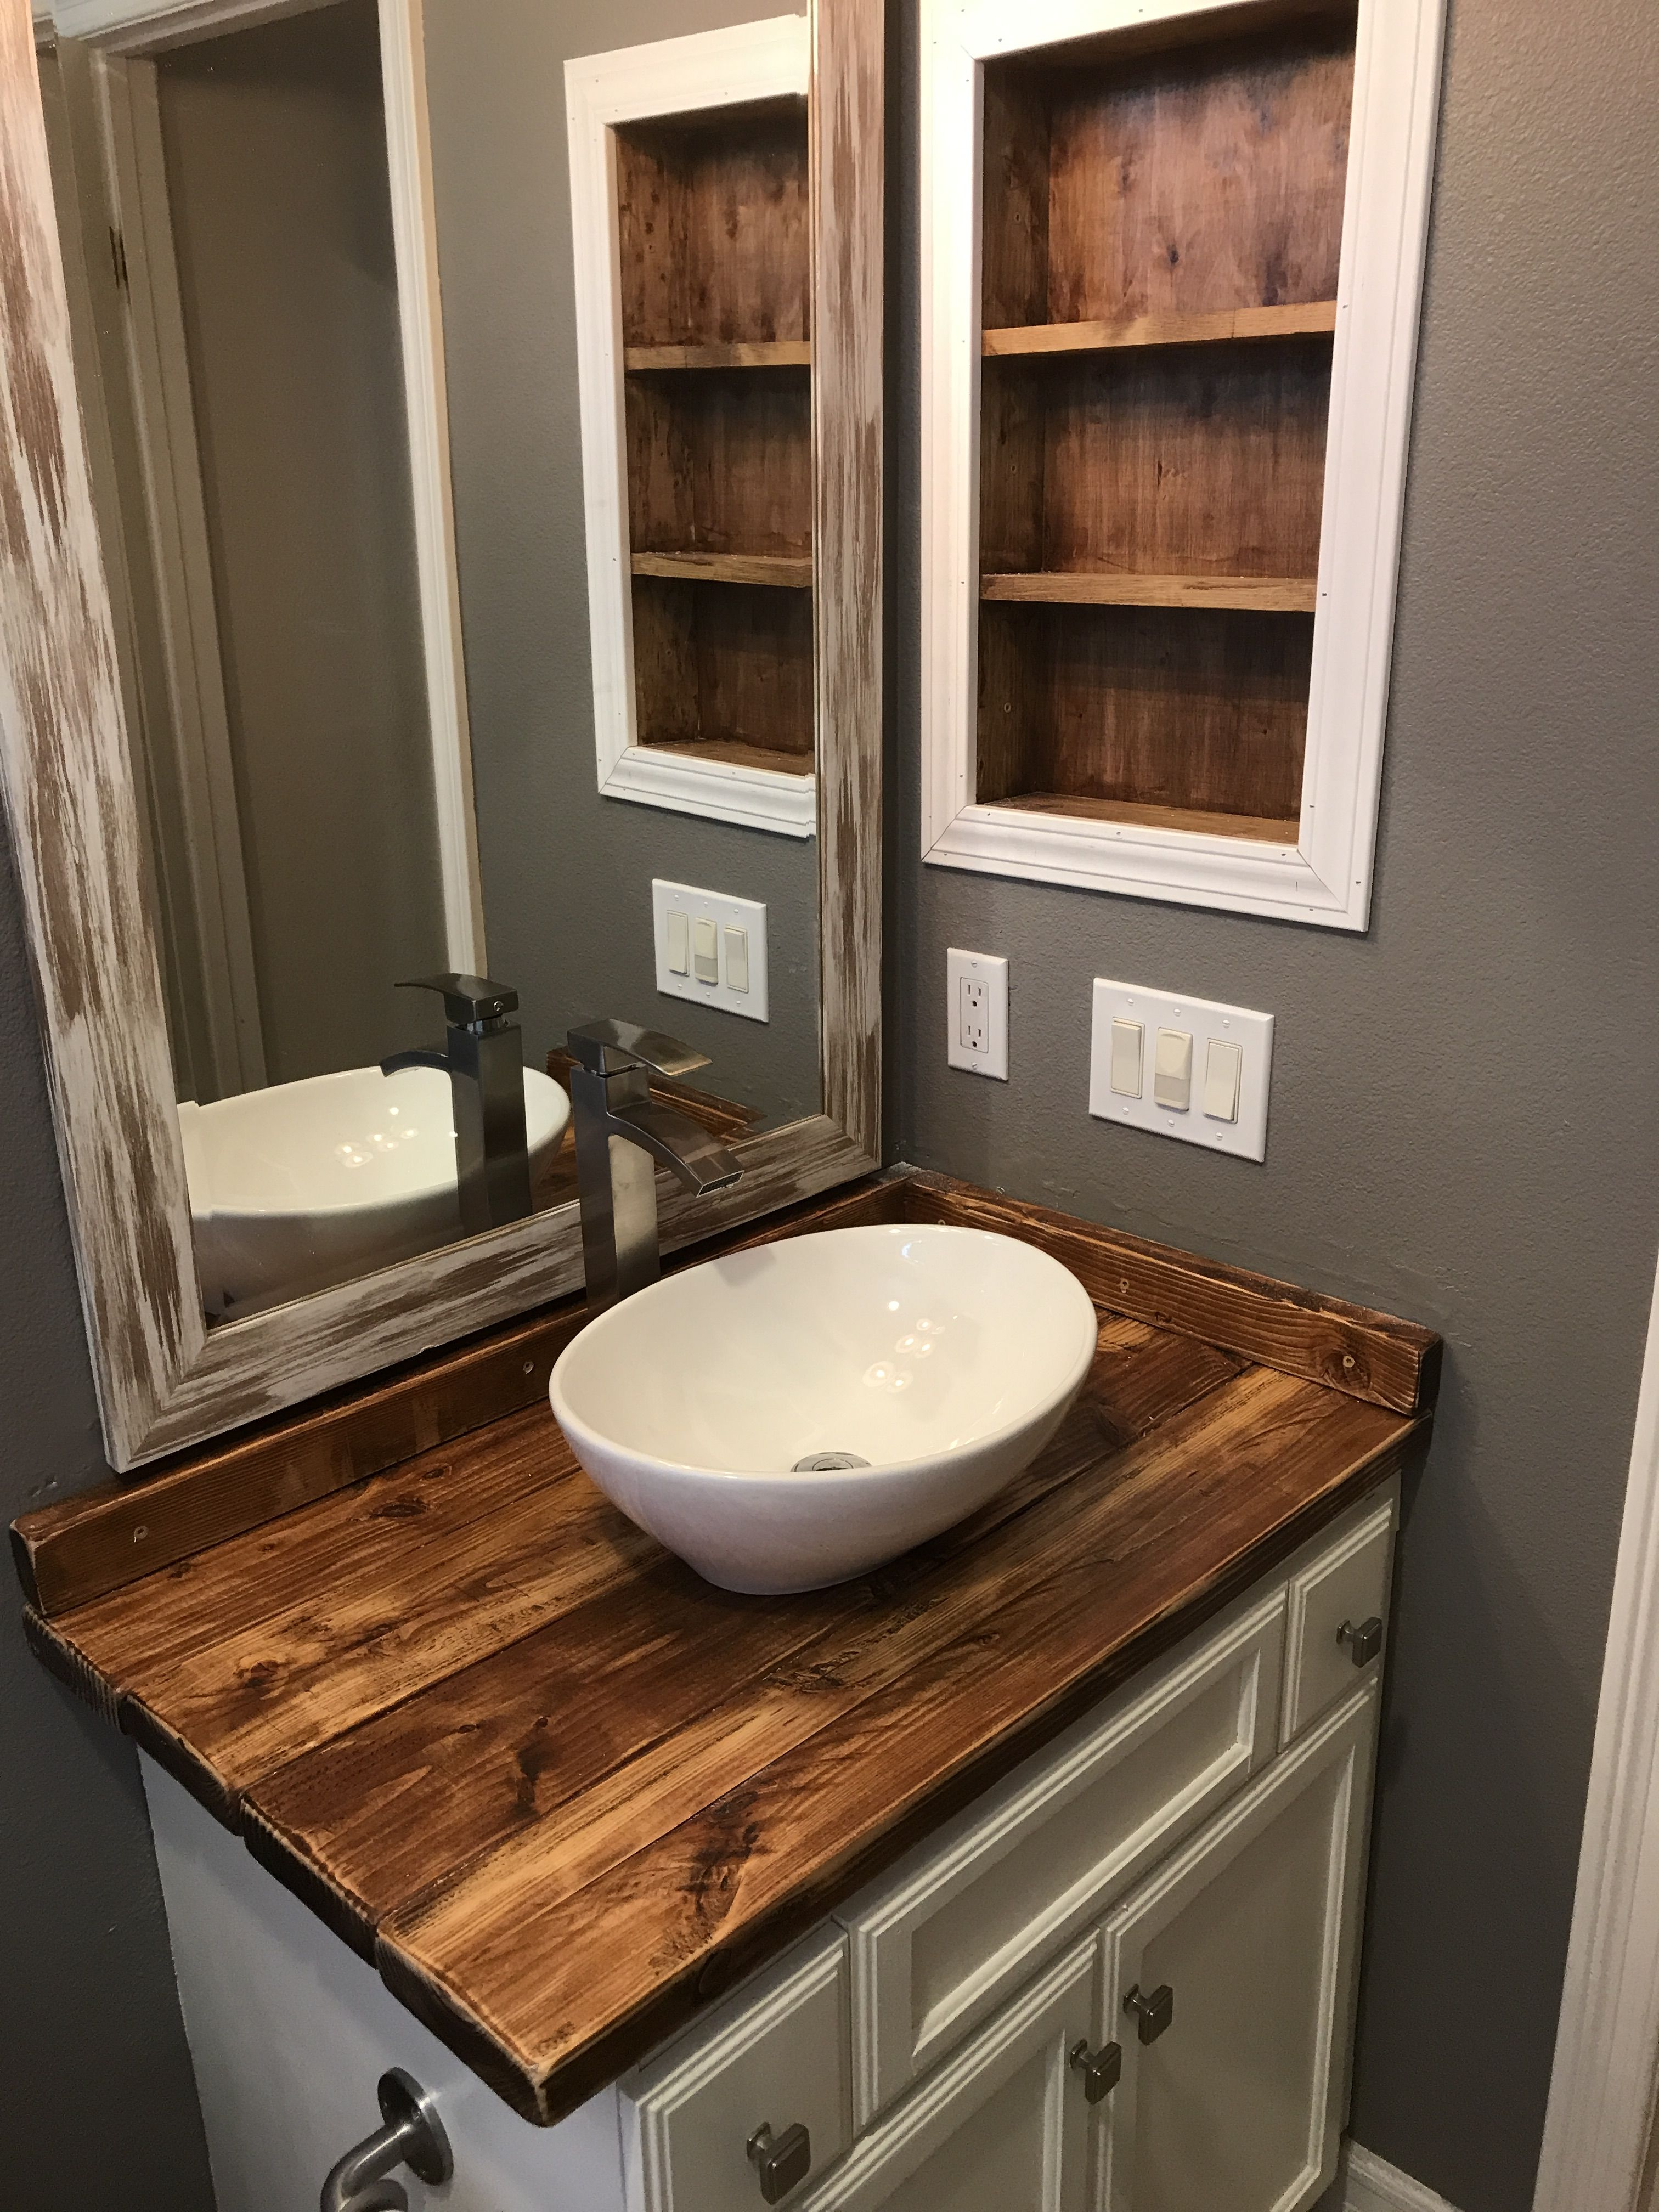 Diy Rustic Wood Countertop And Vessel Sink Bathroom Makeover